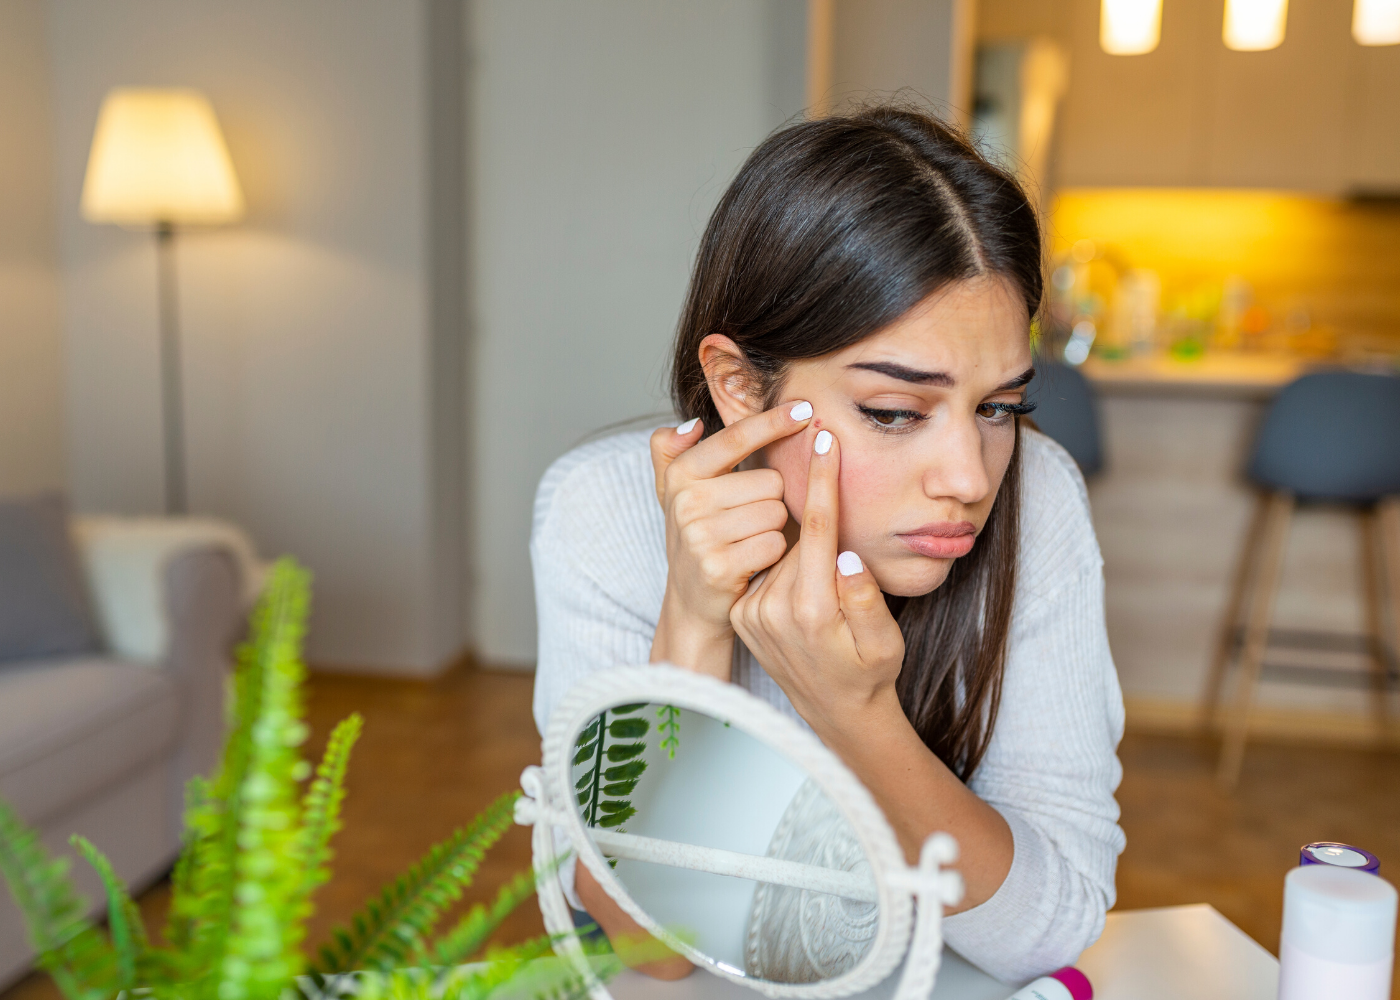 Experts share why you're experiencing acne breakouts during quarantine and how to prep your skin for post-CB